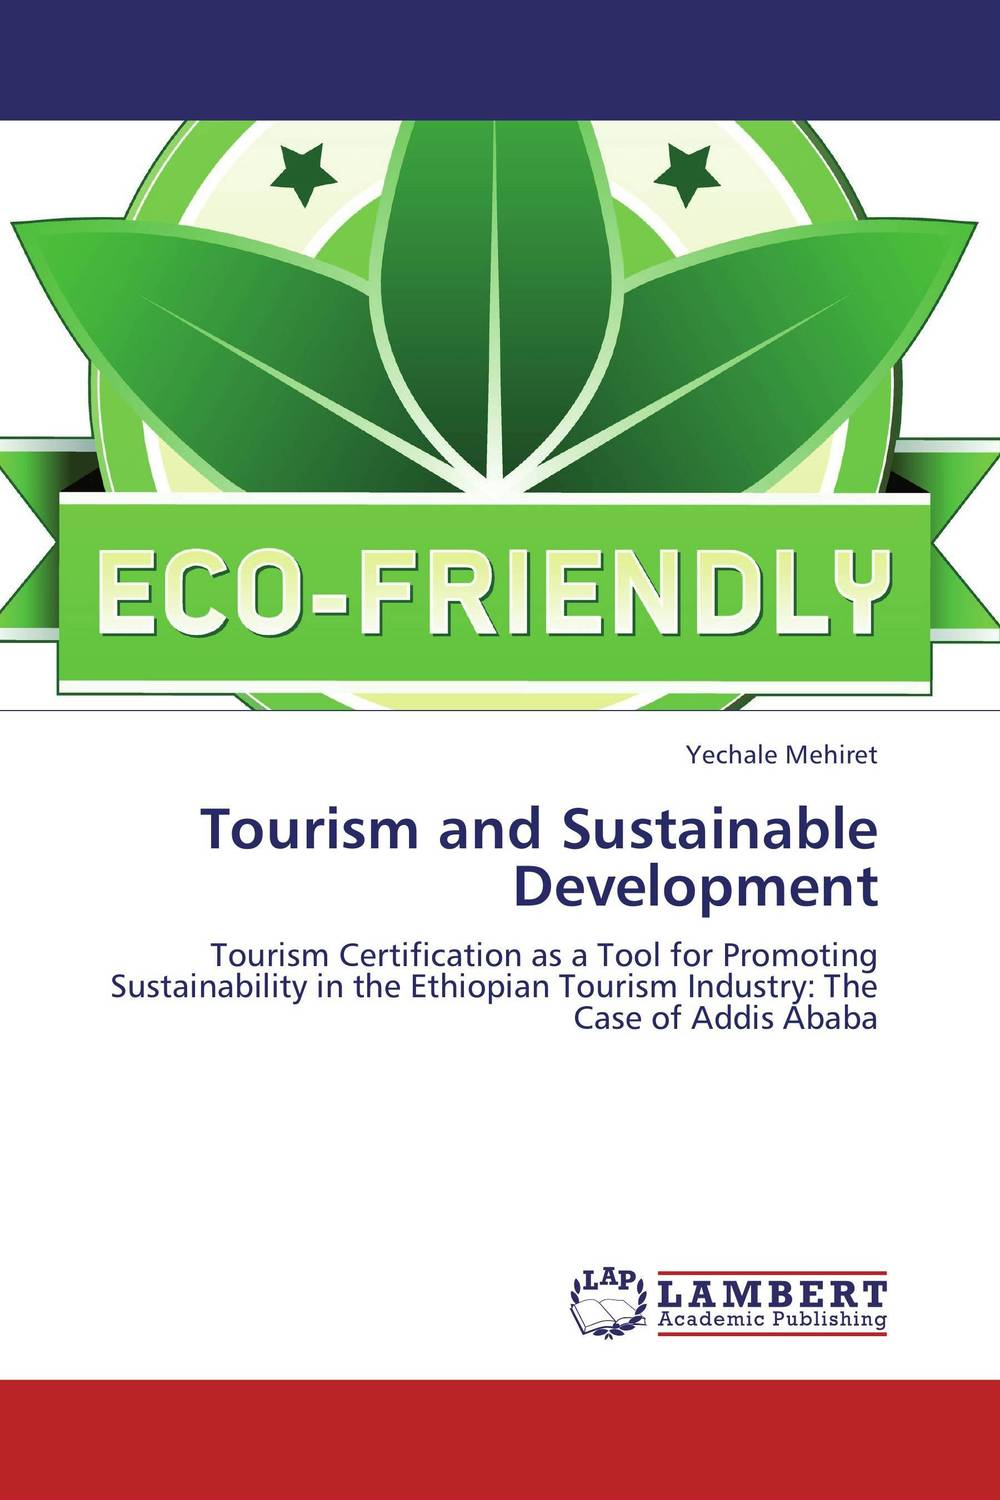 Tourism and Sustainable Development film induced tourism